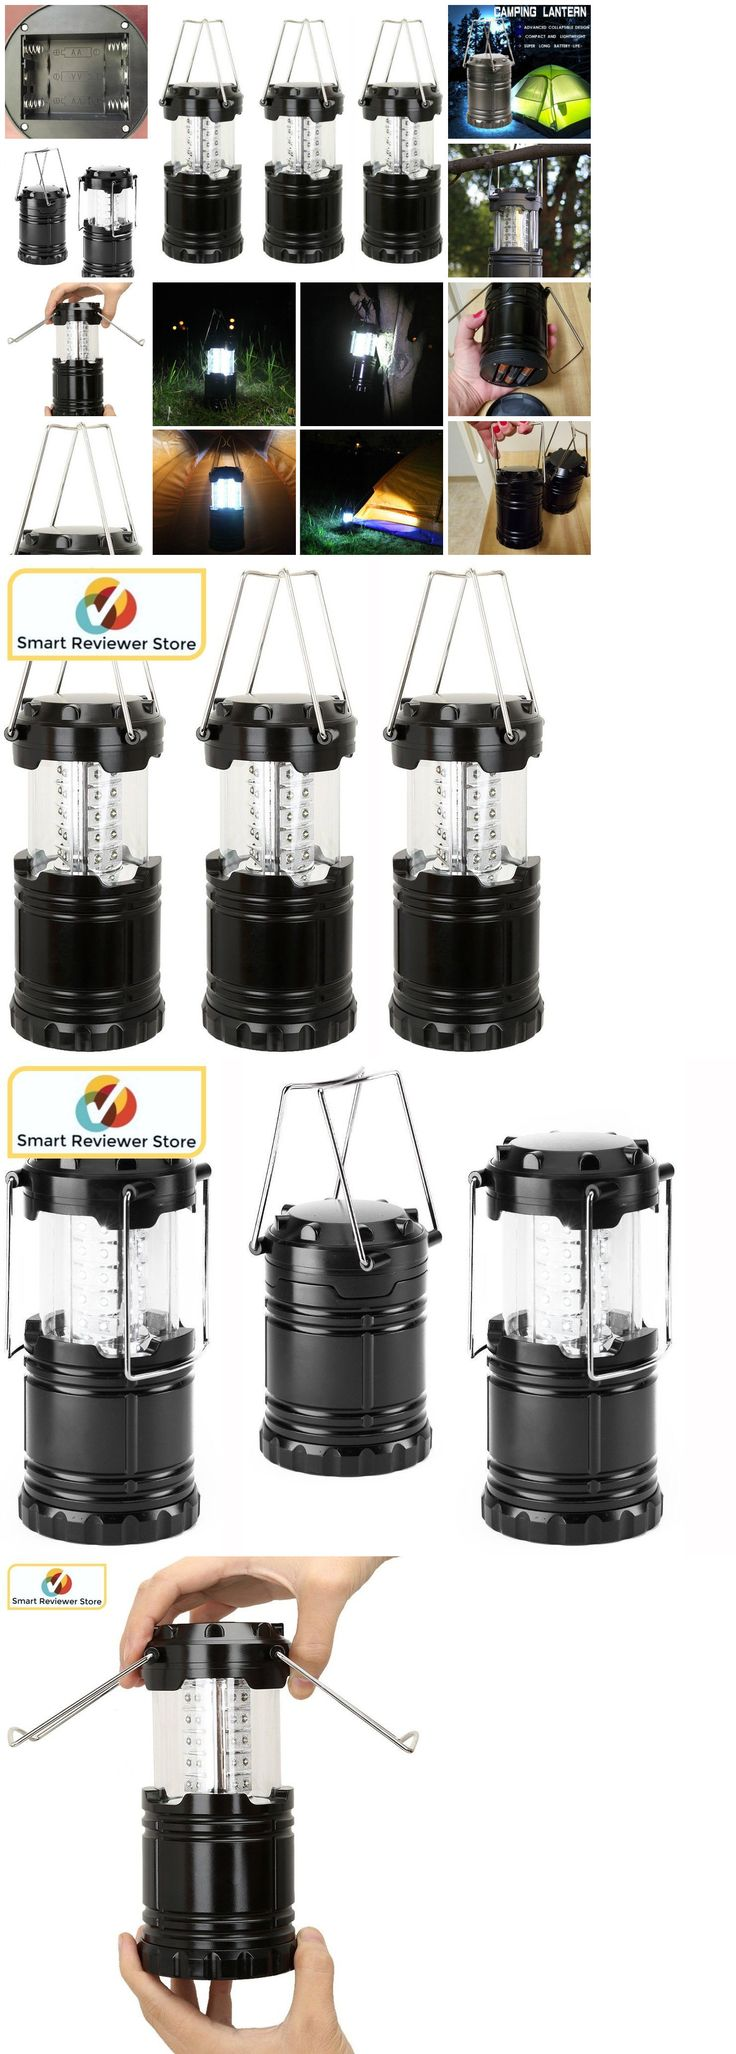 Lanterns 168867: 3 Pack Portable Collapsible Led Lanterns Tac Light Emergency Lamps Camping Light -> BUY IT NOW ONLY: $45.68 on eBay!